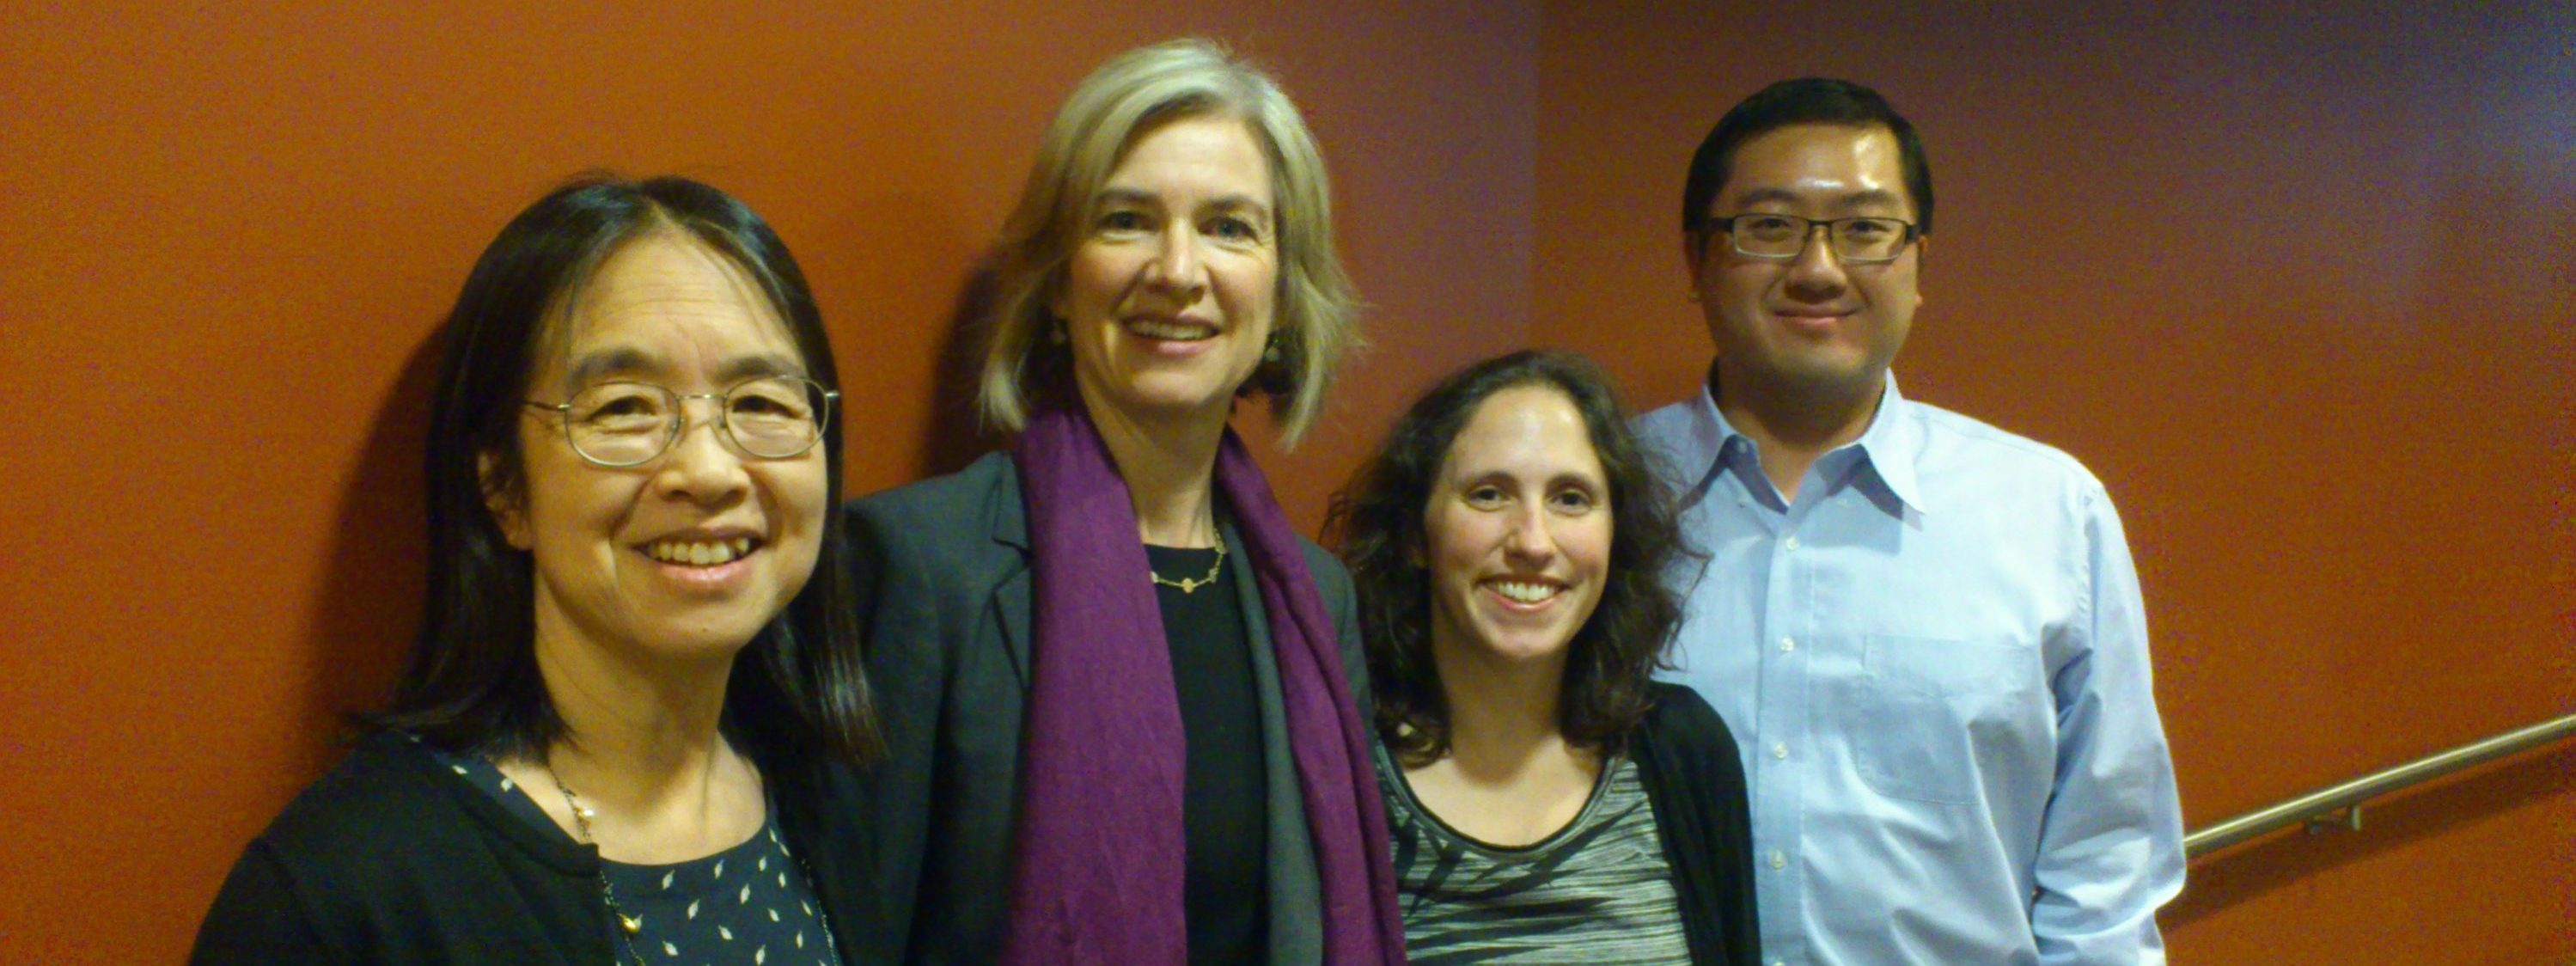 Prof. Jennifer Doudna makes generous gift to pgEd